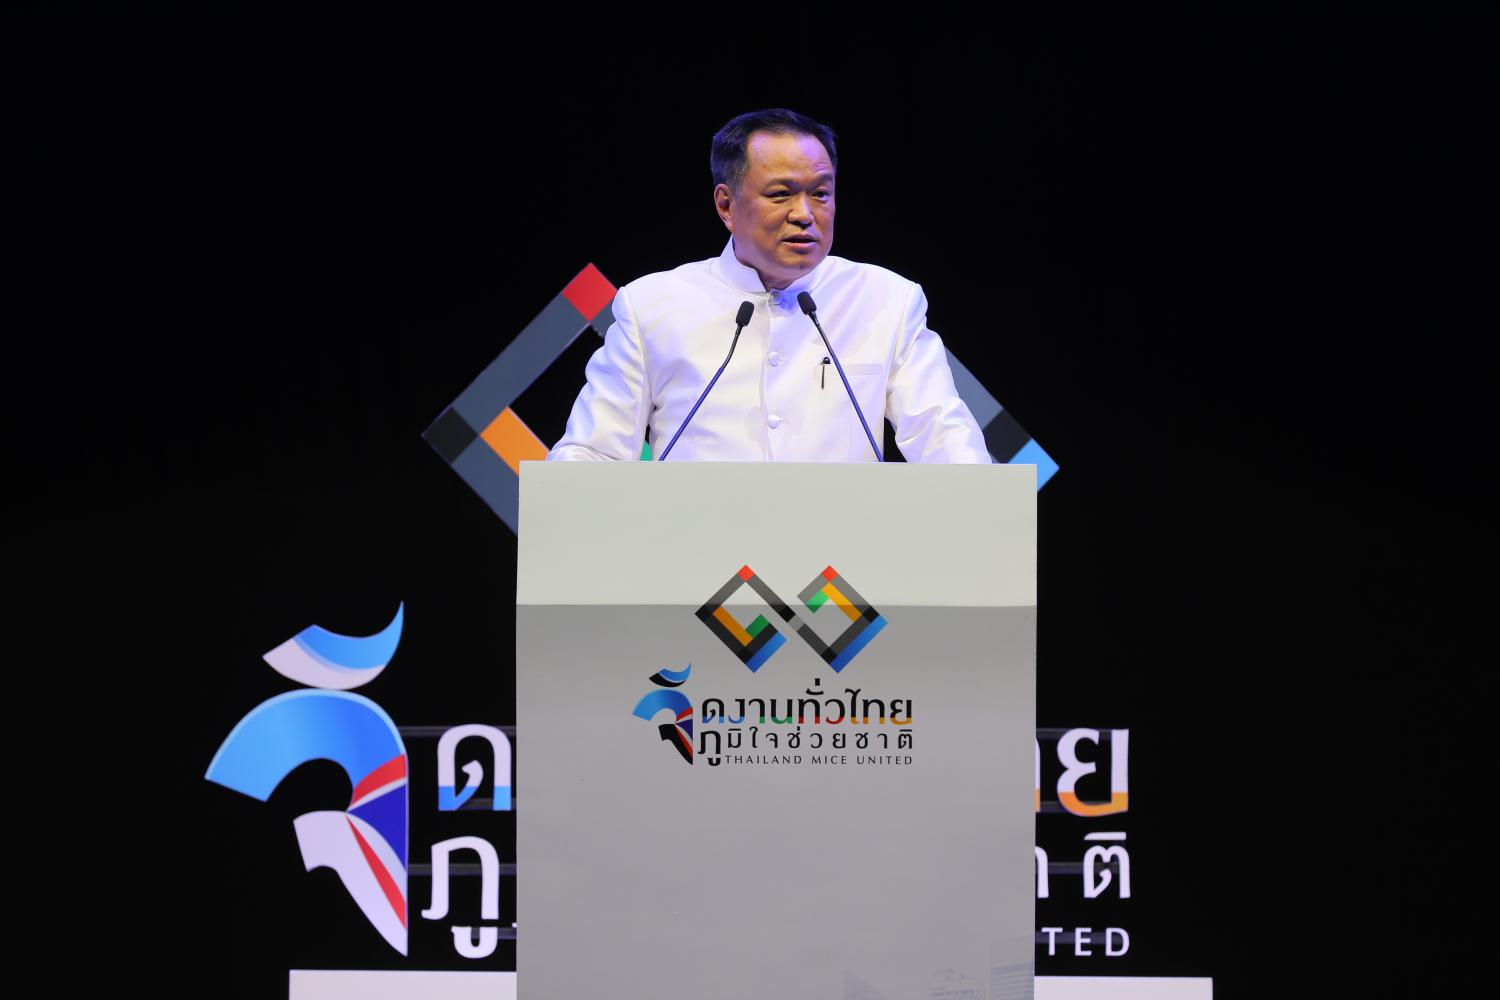 Deputy prime minister and Public health minister Anutin Charnvirakul at Thailand Mice United event hosted by the Thailand Convention and Exhibition Bureau on Wednesday.